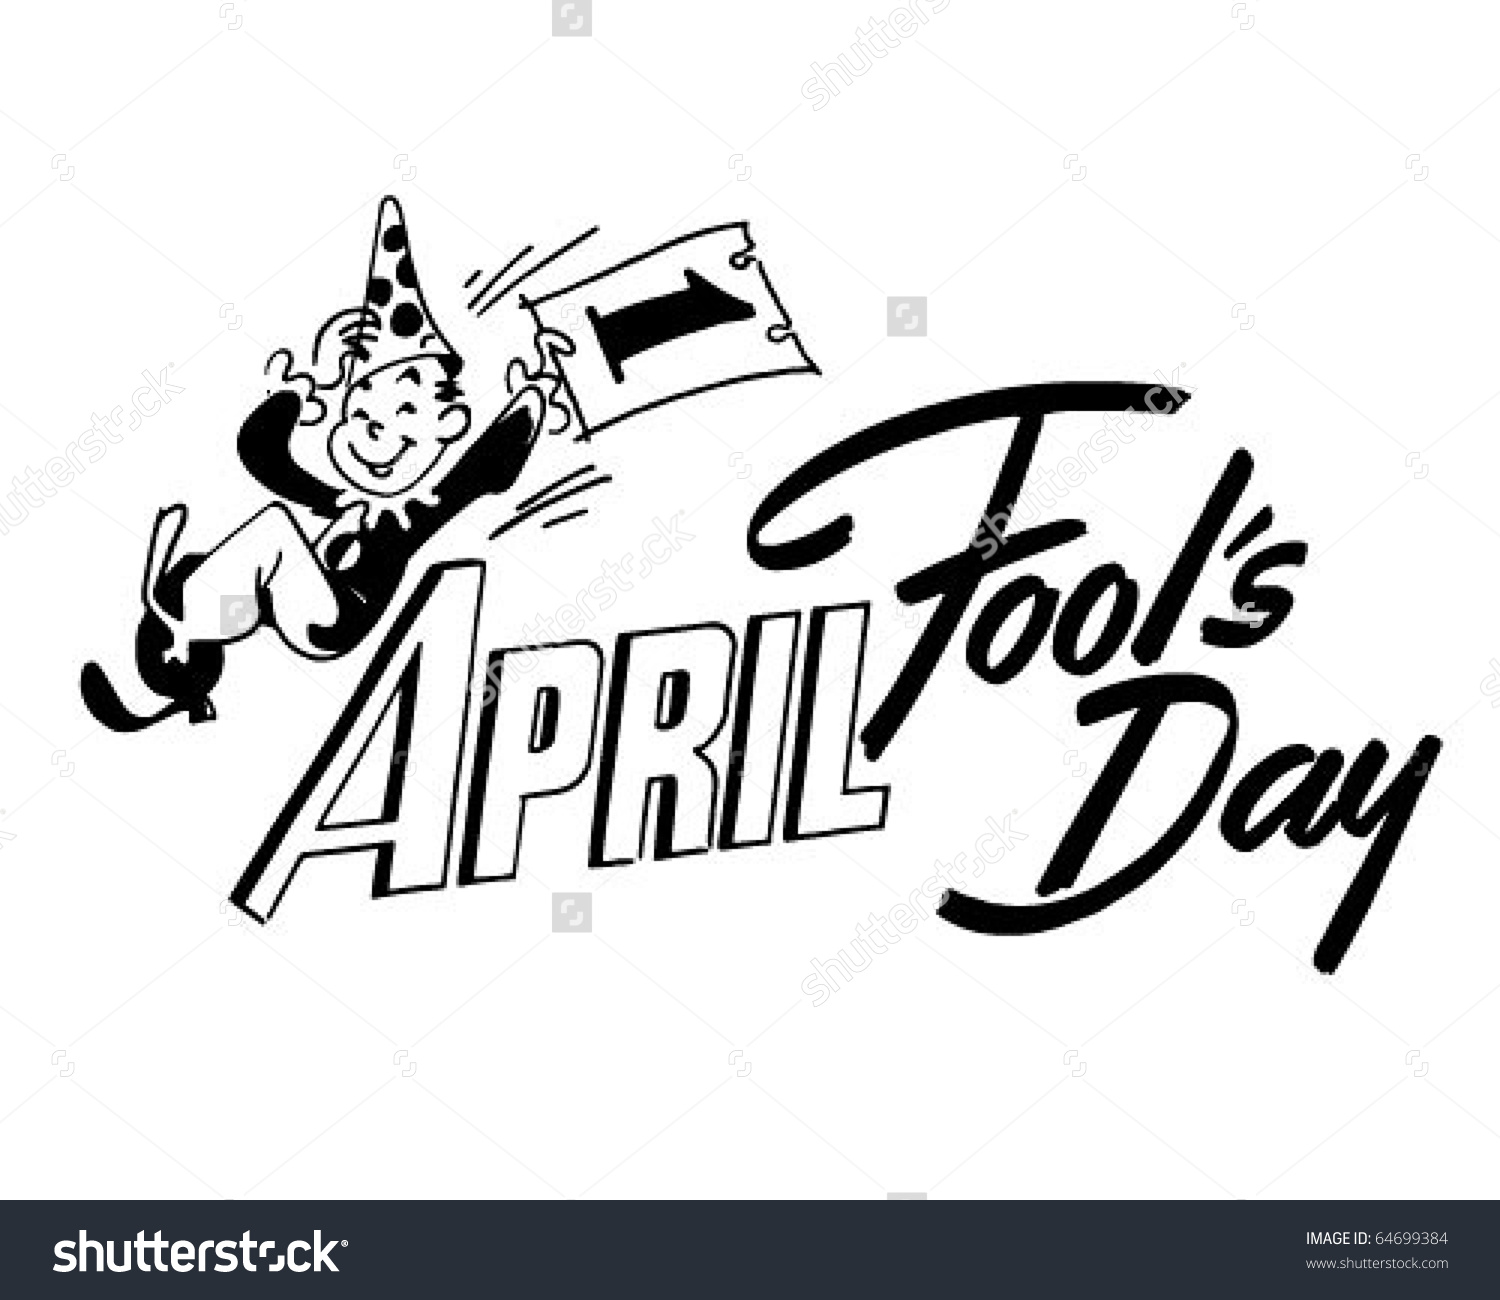 April fools day clipart black and white image library library April Fools Day Ad Header Retro Stock Vector 64699384 - Shutterstock image library library